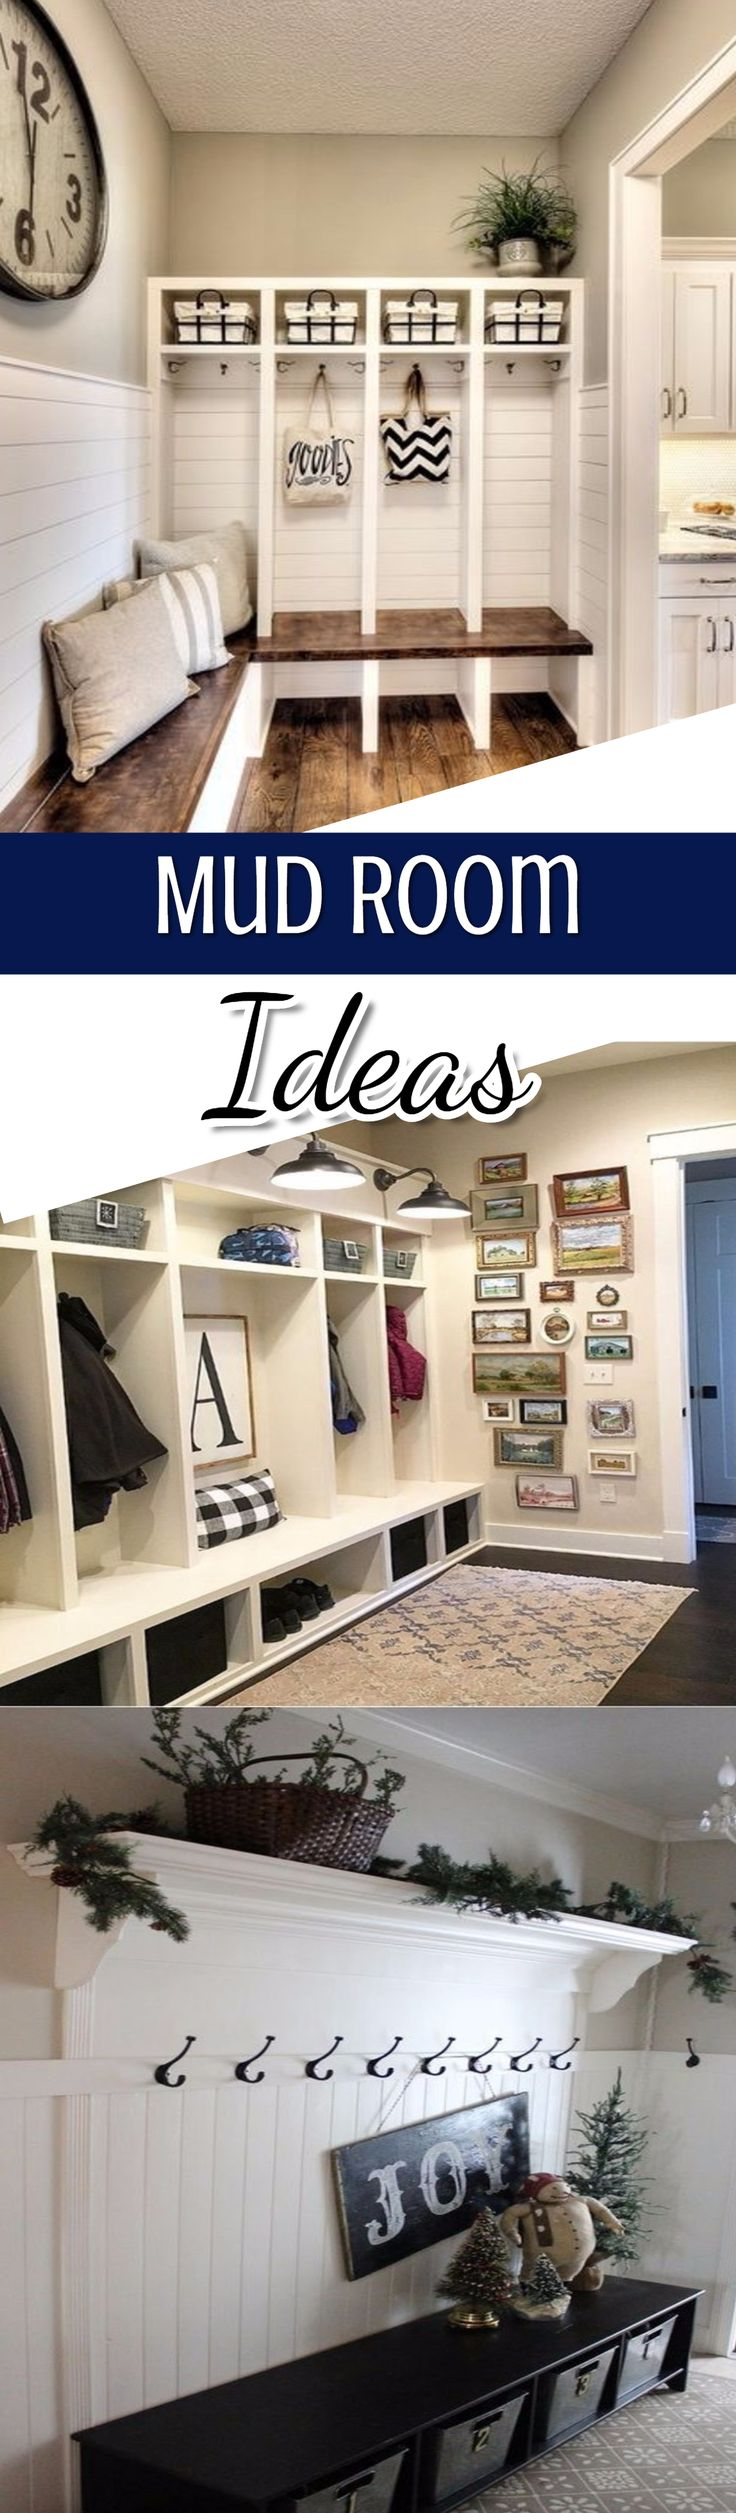 Beautiful mud room ideas for home.  perfect for a foyer DIY project, or in the laundry room or even a dedicated mudroom area.